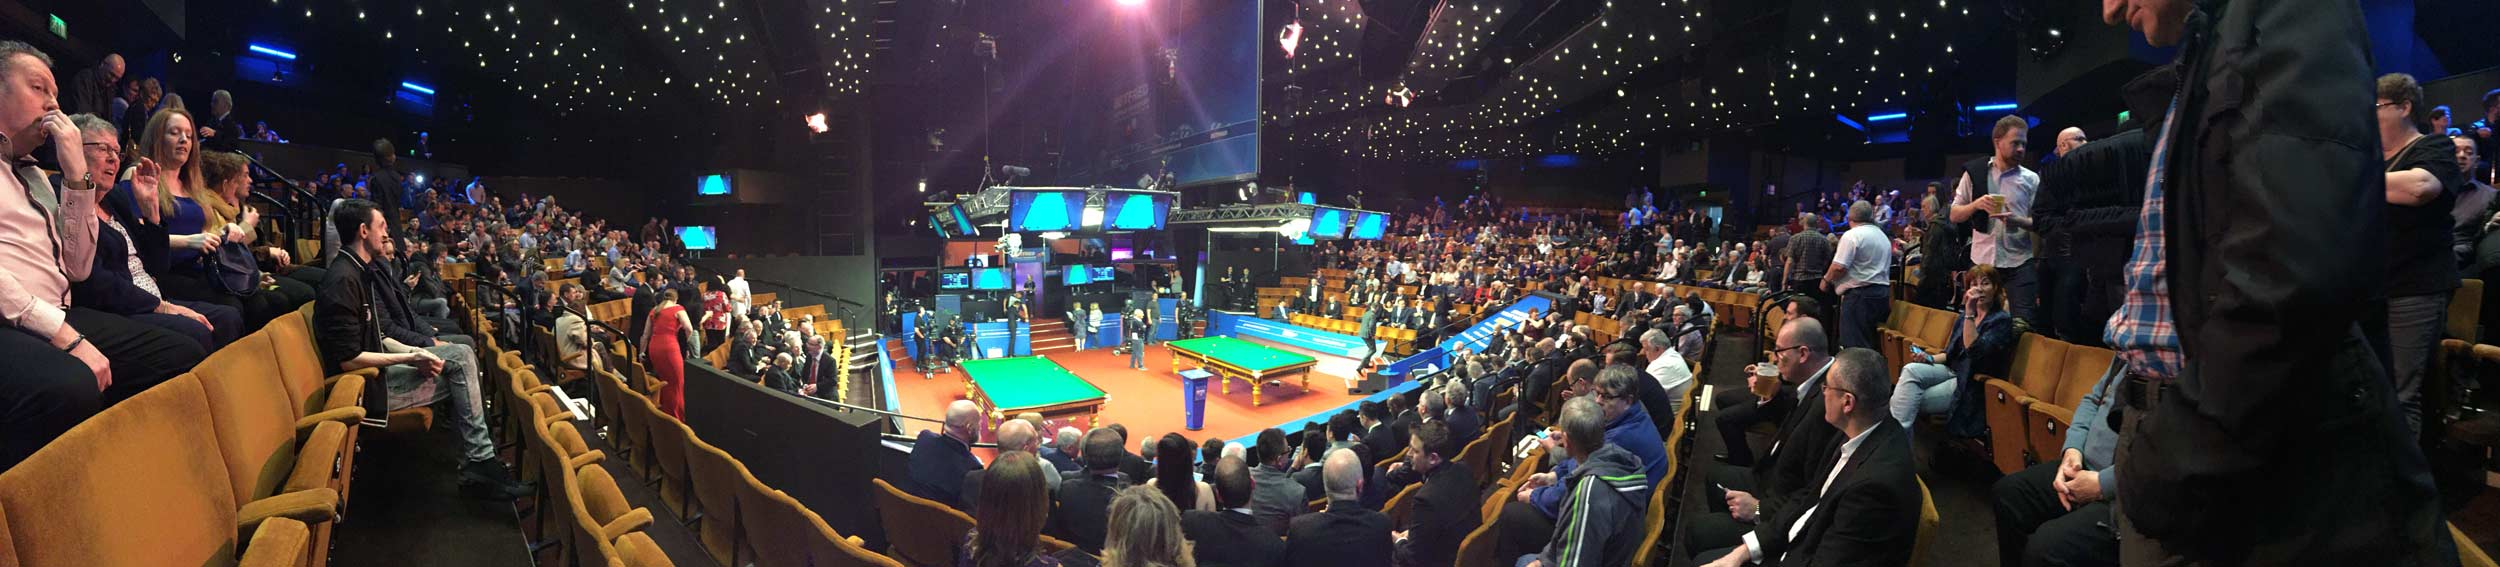 BBC snooker the crucible